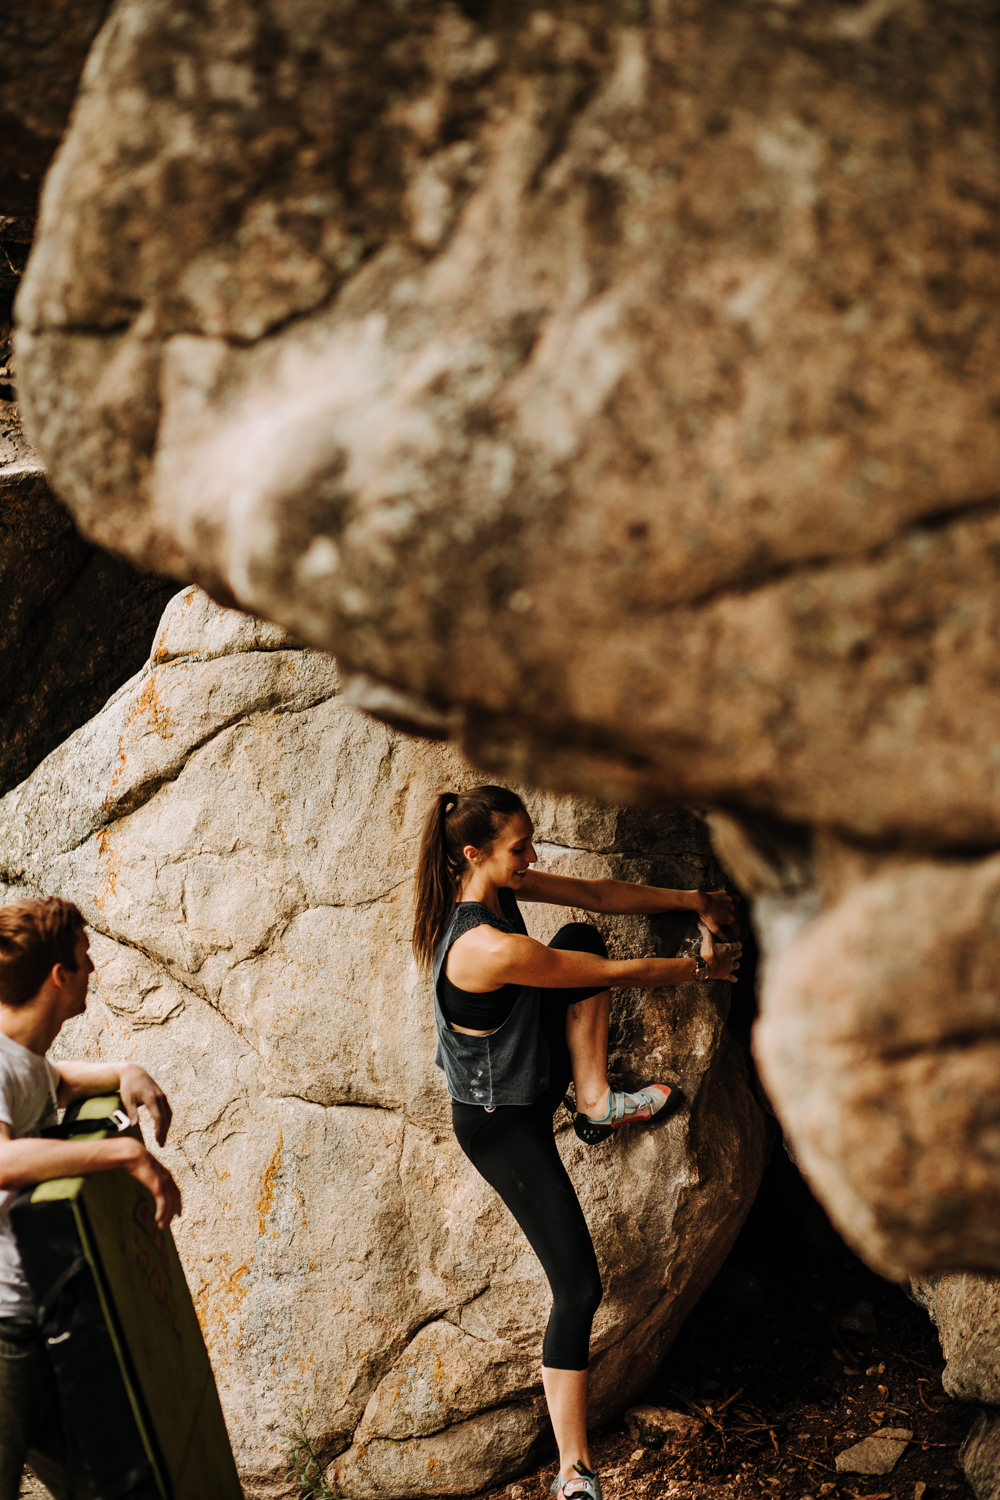 Woman beginning to boulder and rock climb